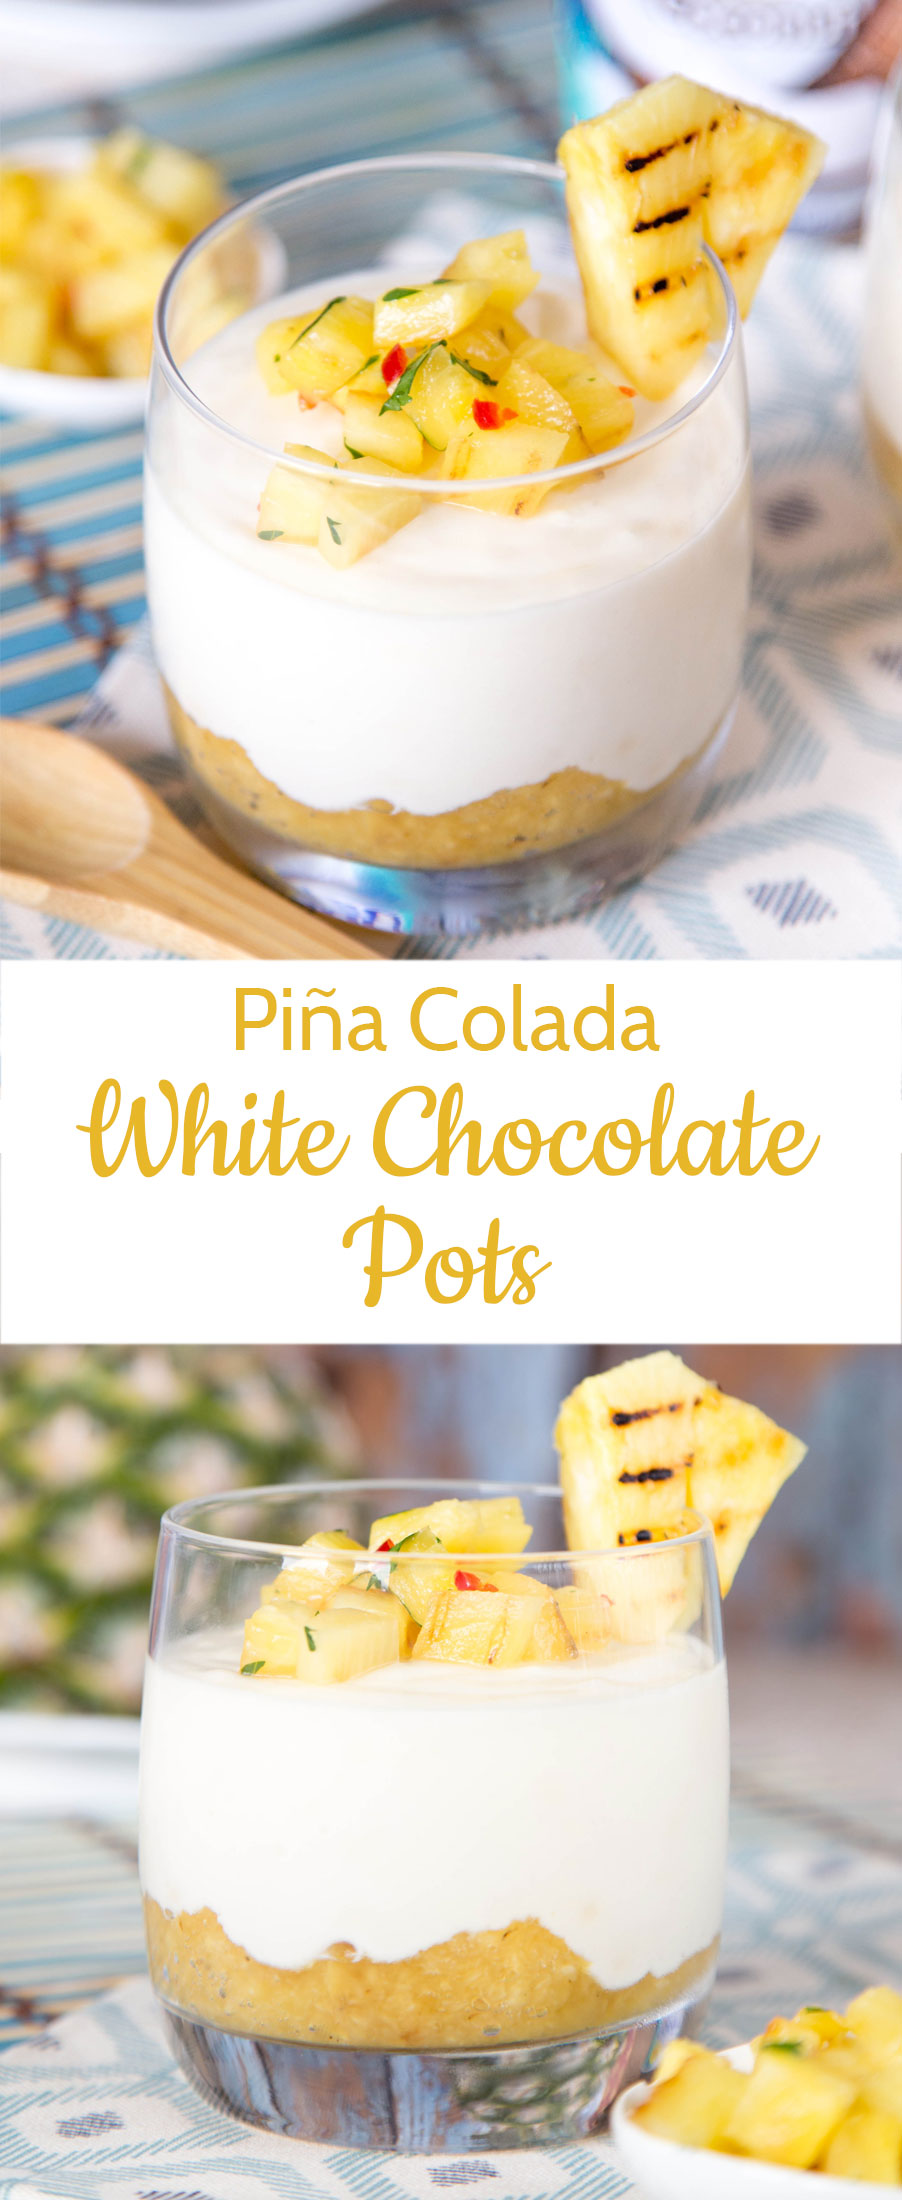 These creamy white chocolate piña colada yogurt puddings topped with pineapple salsa are lighter than chocolate pots, and will brighten the mood, whatever the weather